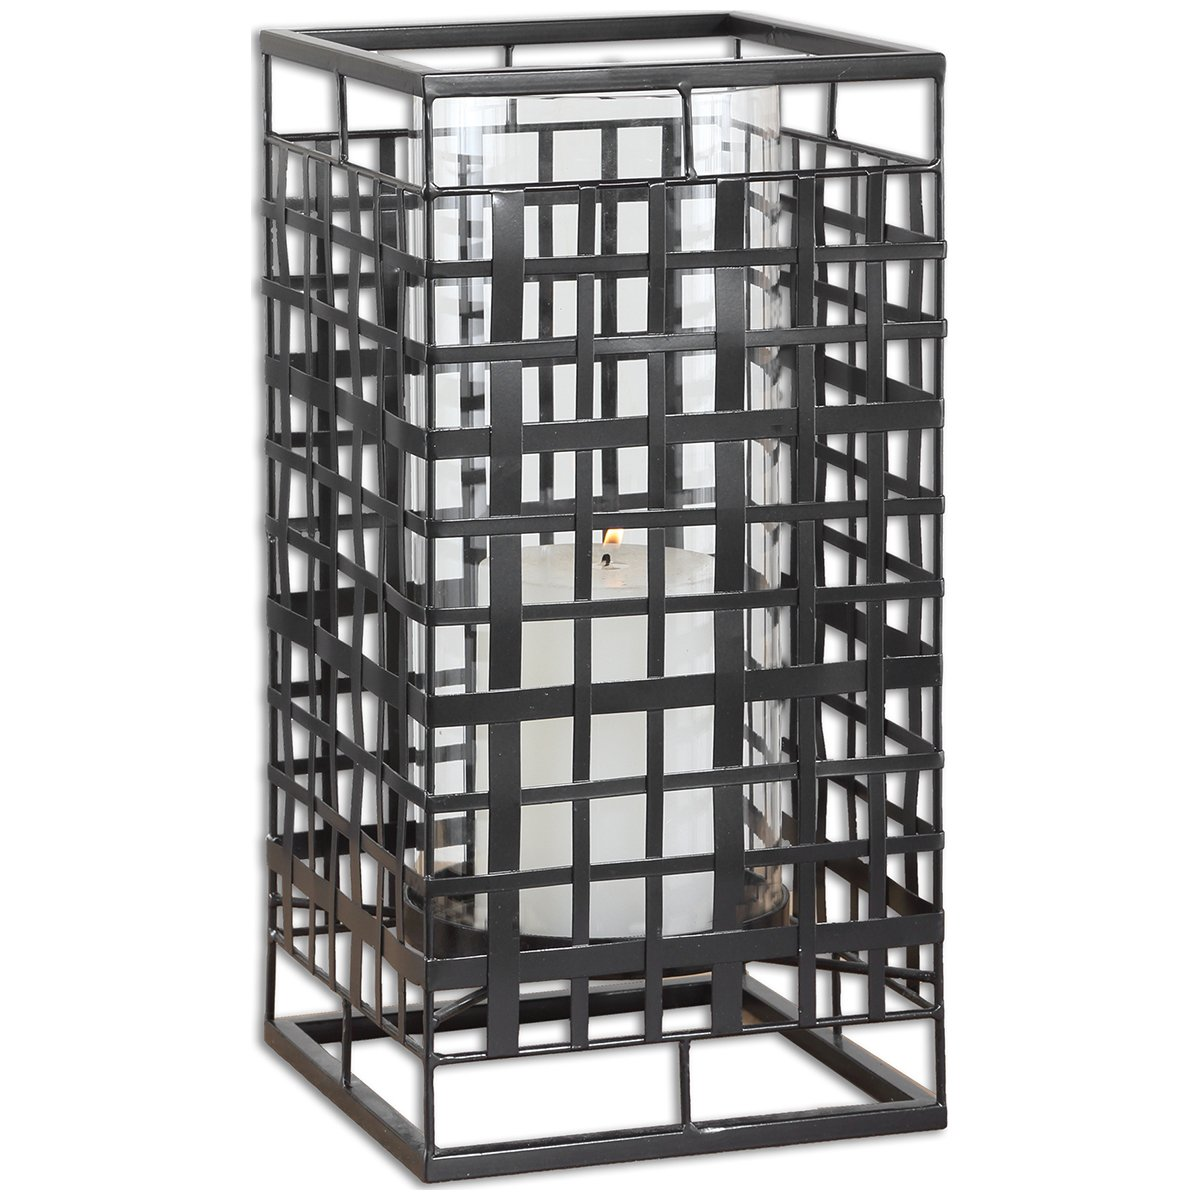 Uttermost 19973 Caged in Metal Candleholder by Uttermost